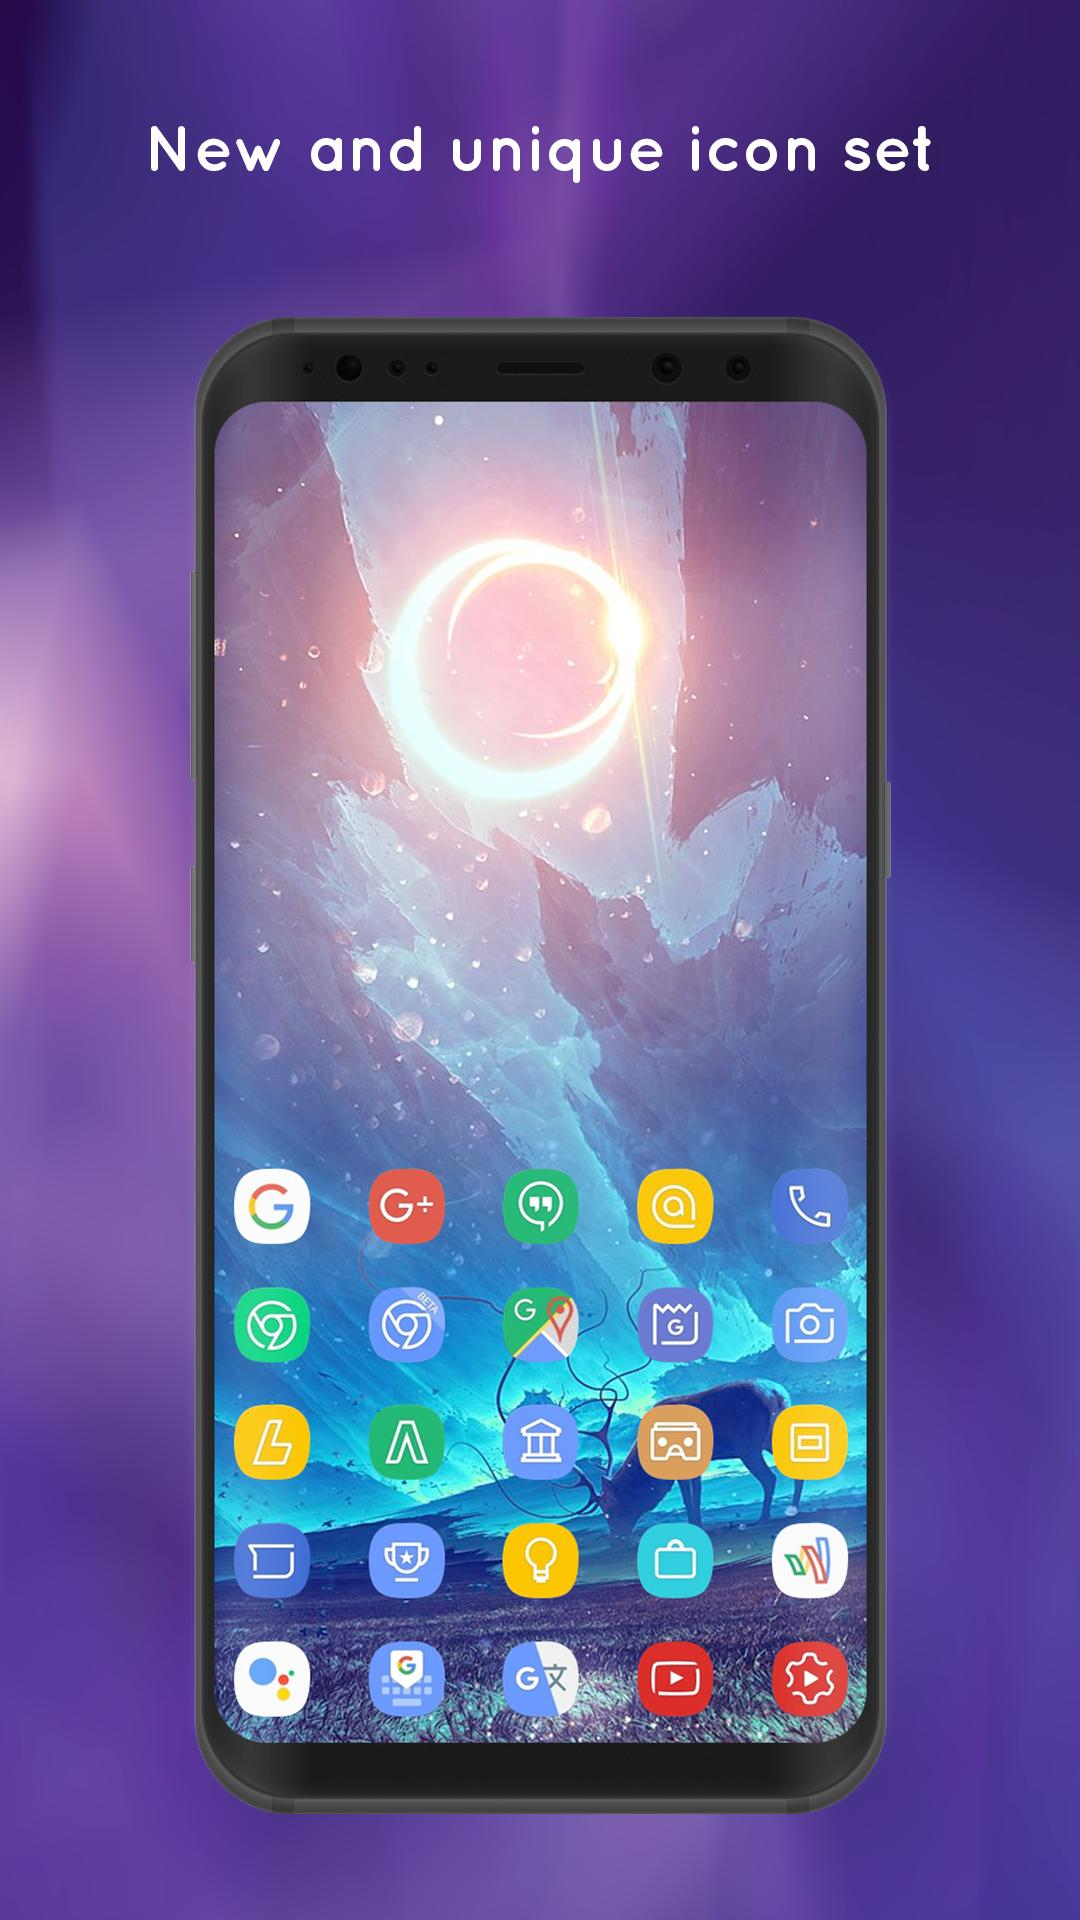 S9 Launcher - Galaxy S9 Launcher for Android - APK Download